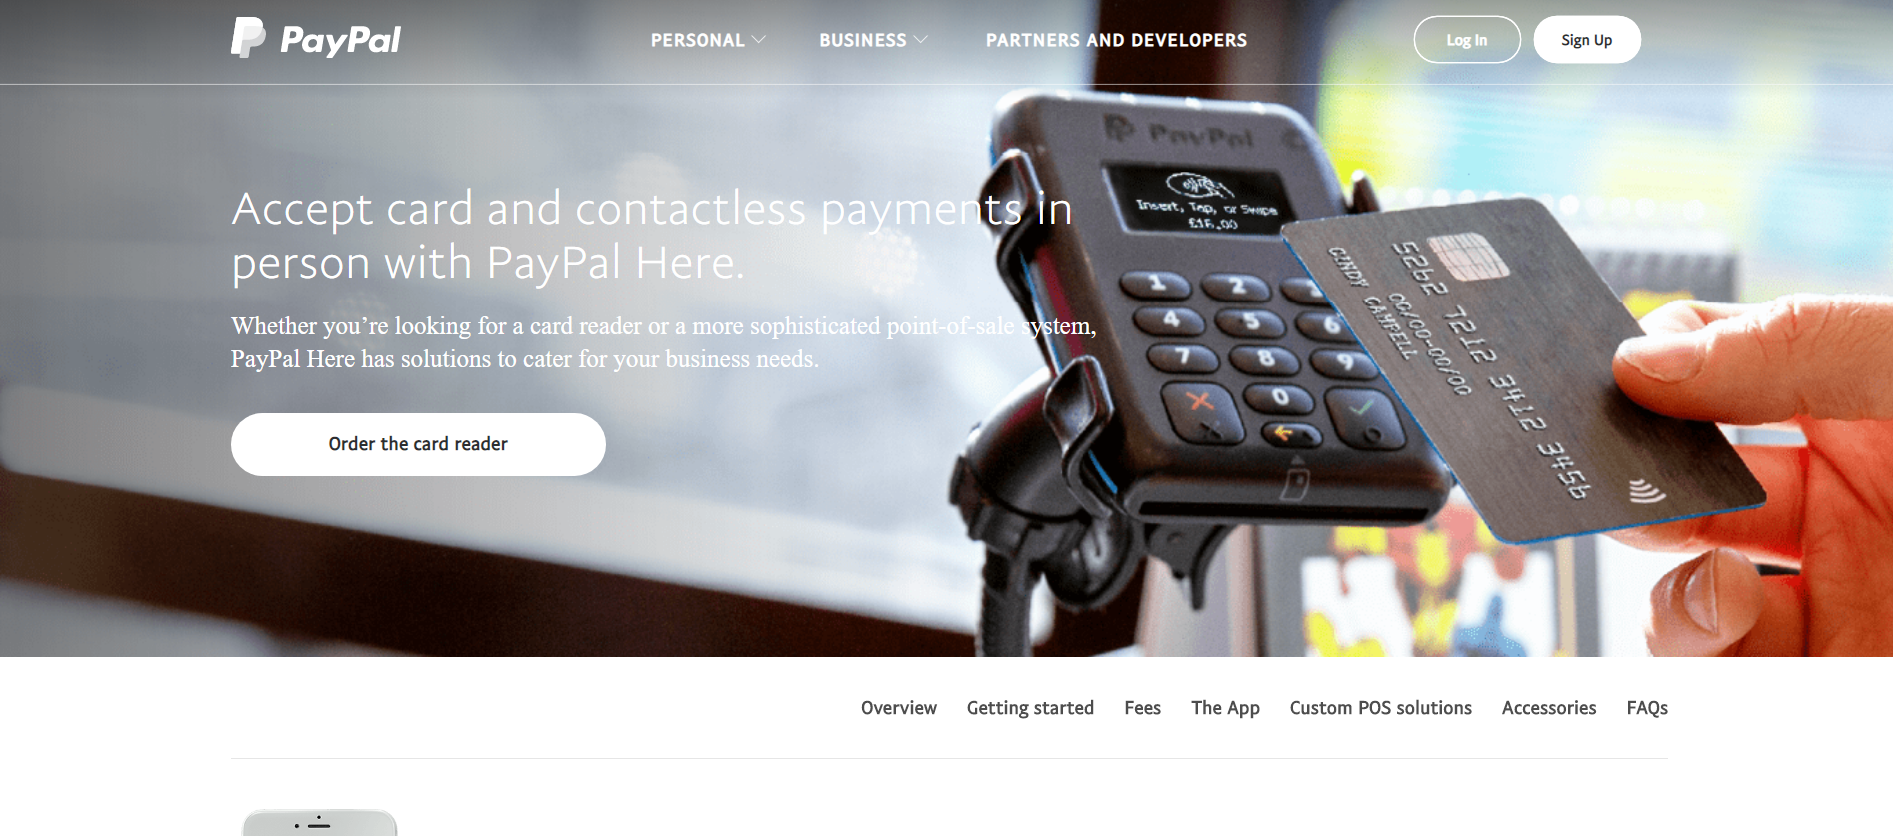 Card Machine Providers For Small Businesses 8